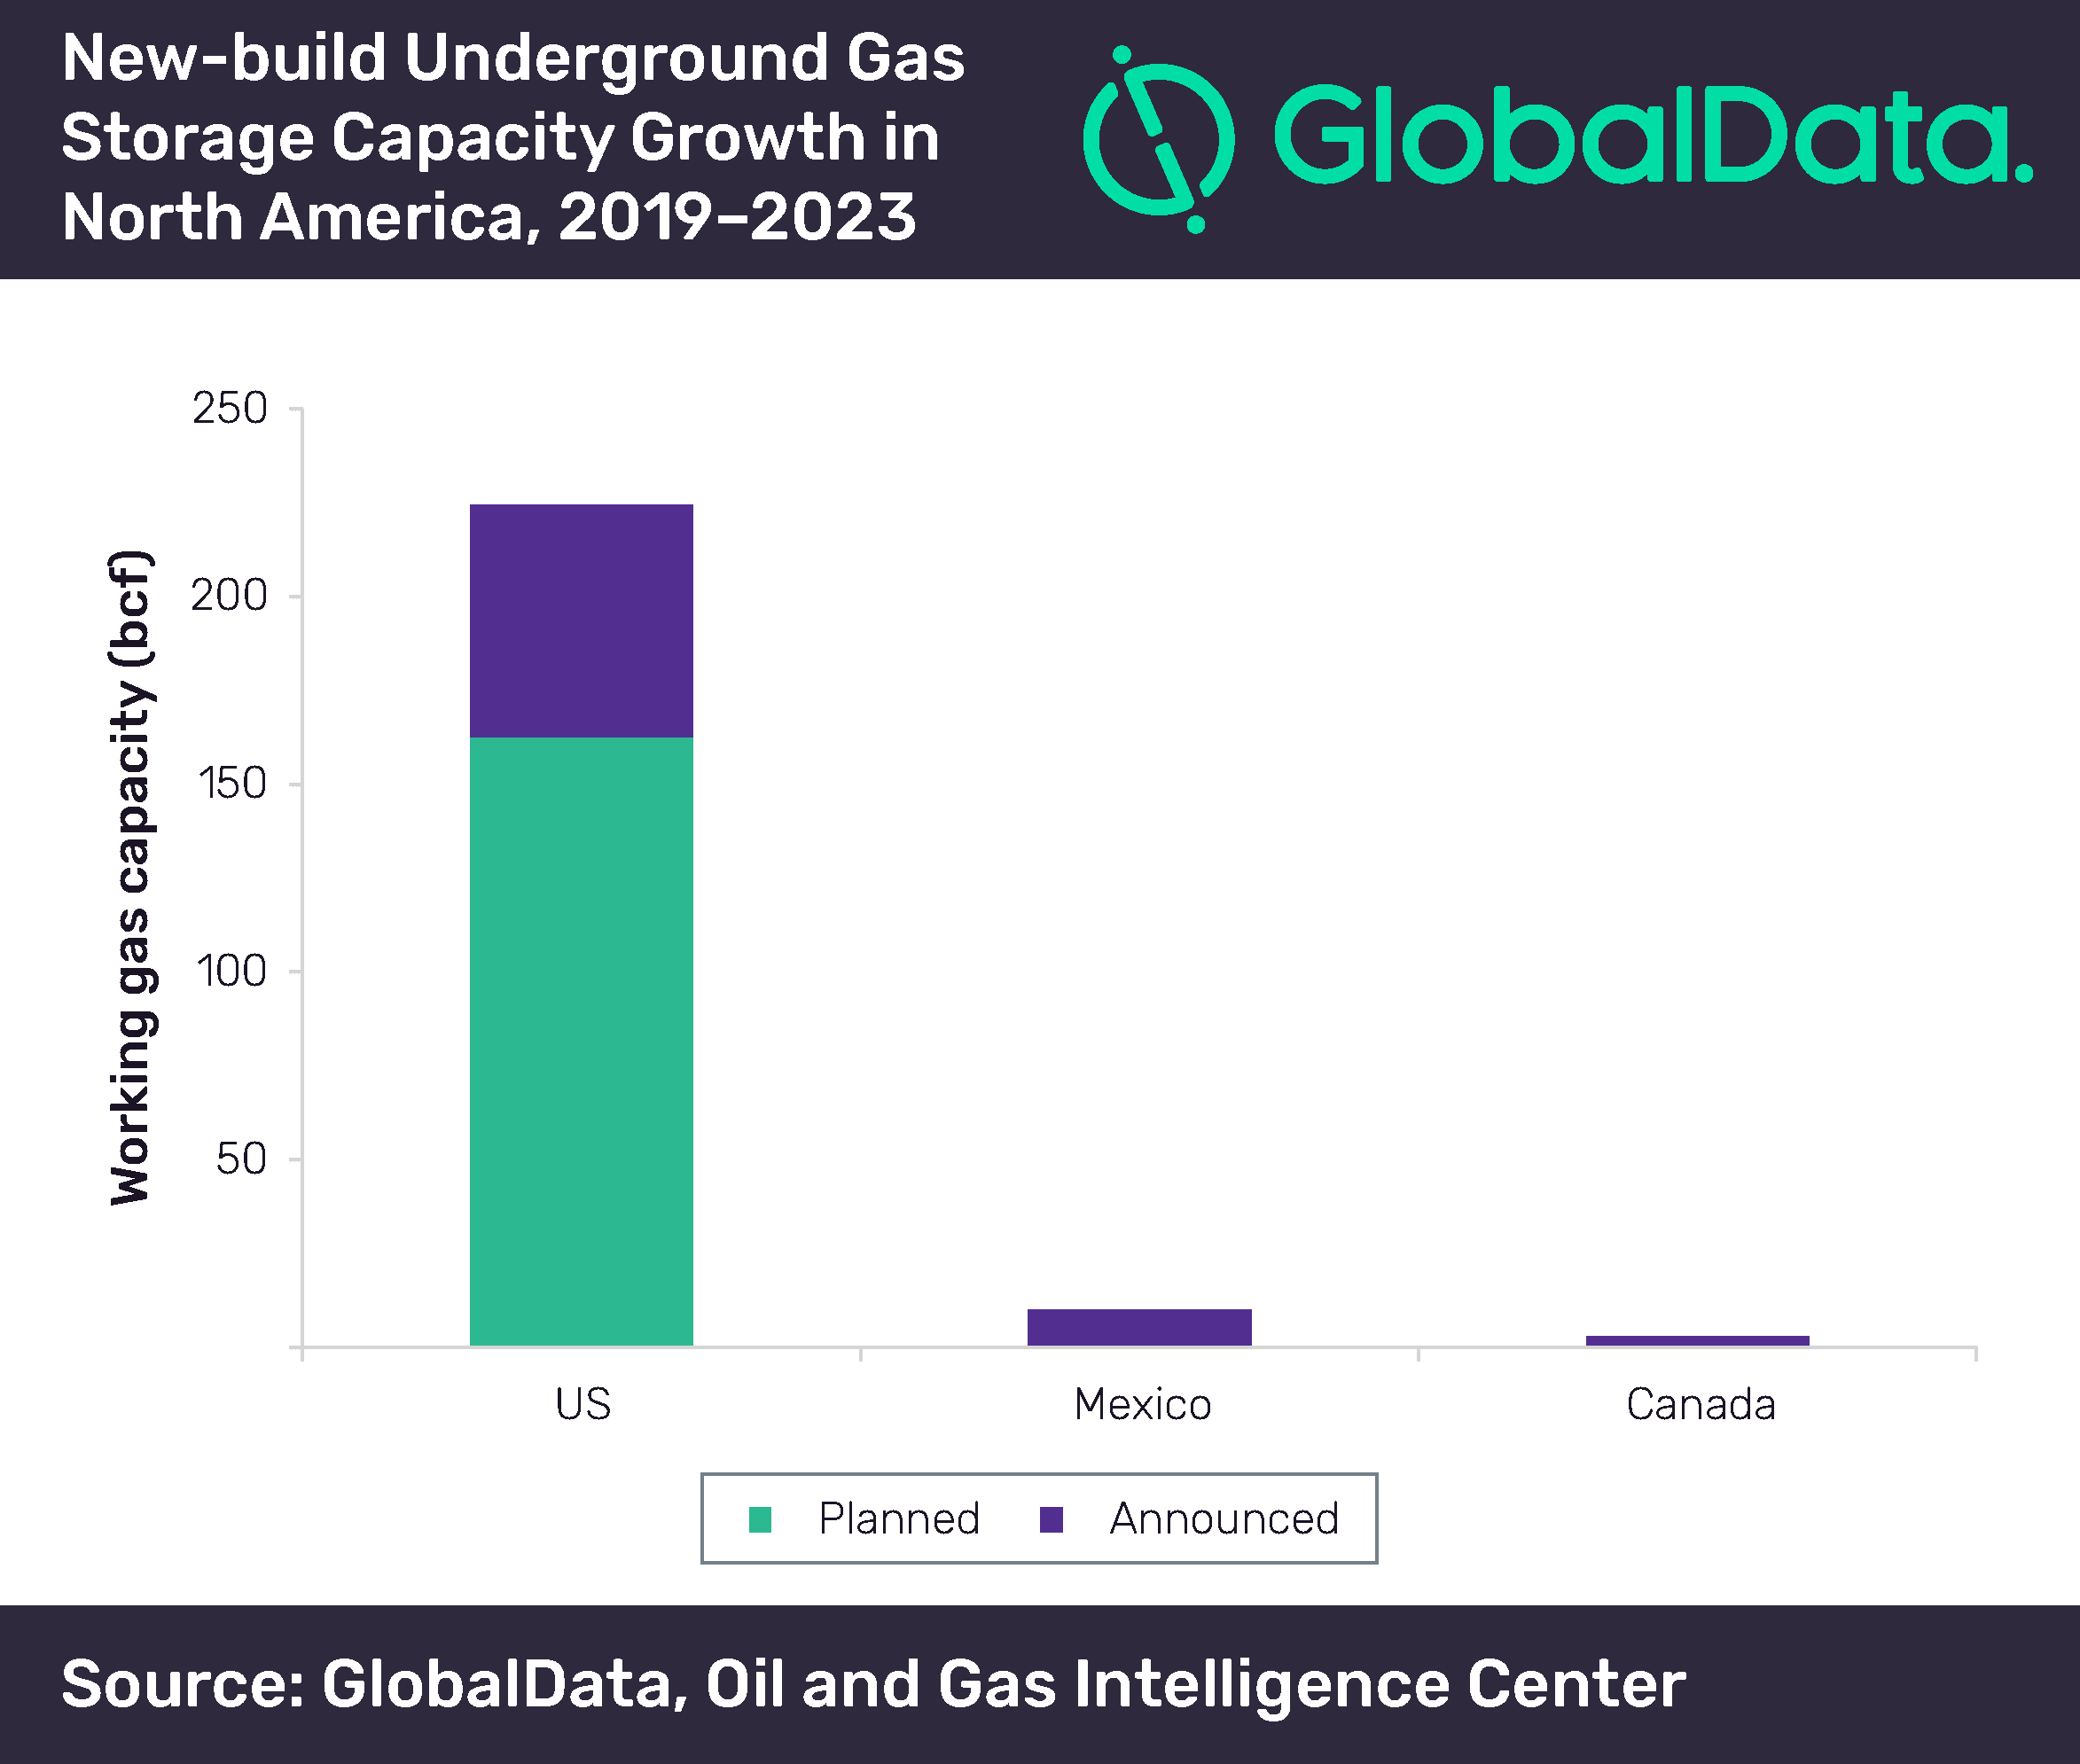 US will contribute 95% of North America's new-build underground gas storage capacity growth by 2023